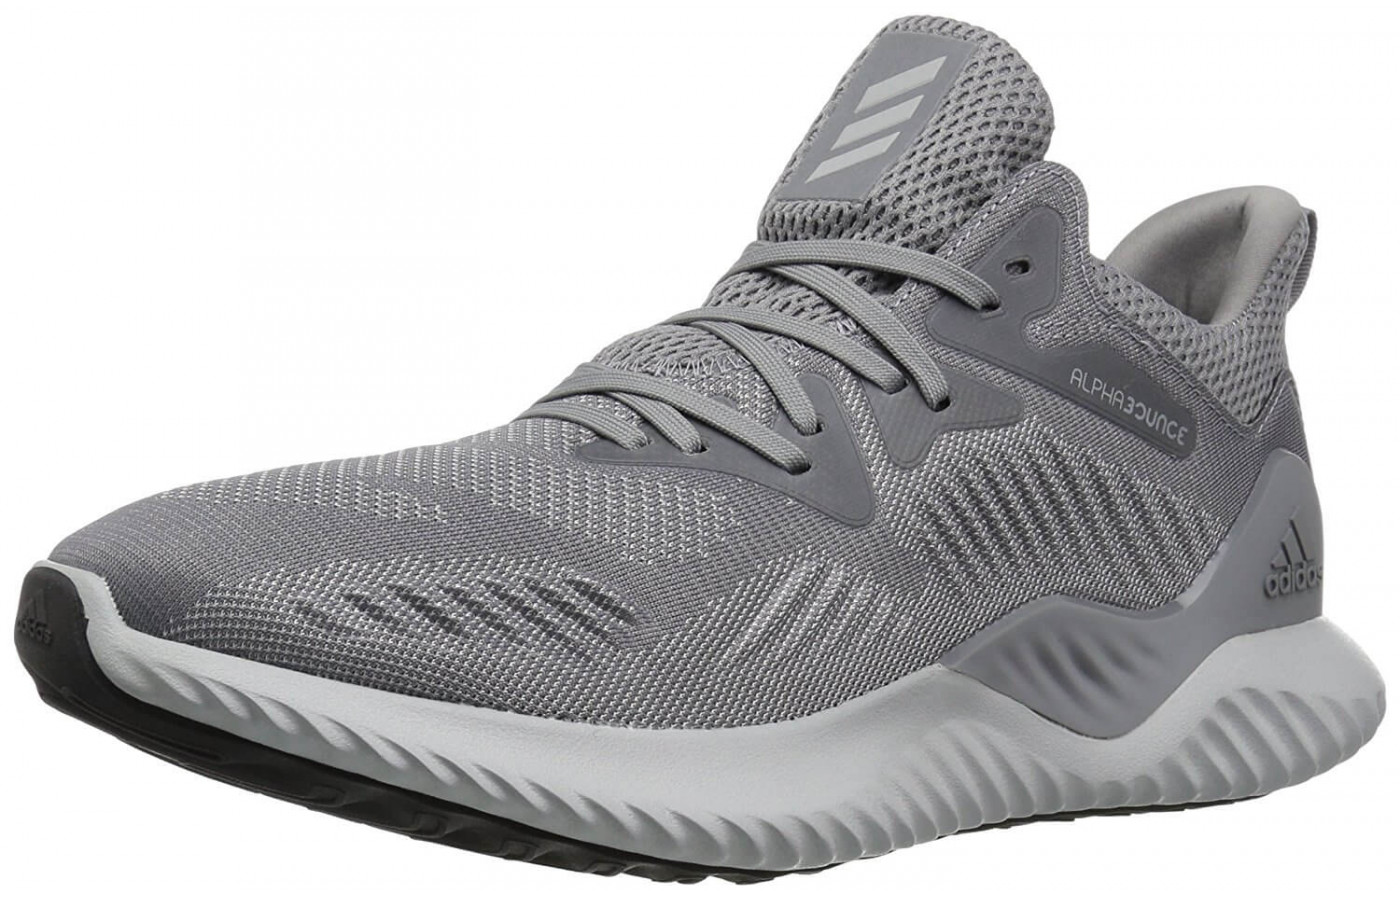 7a4dc1ea3e0b8 Adidas Alphabounce Beyond - To Buy or Not in May 2019